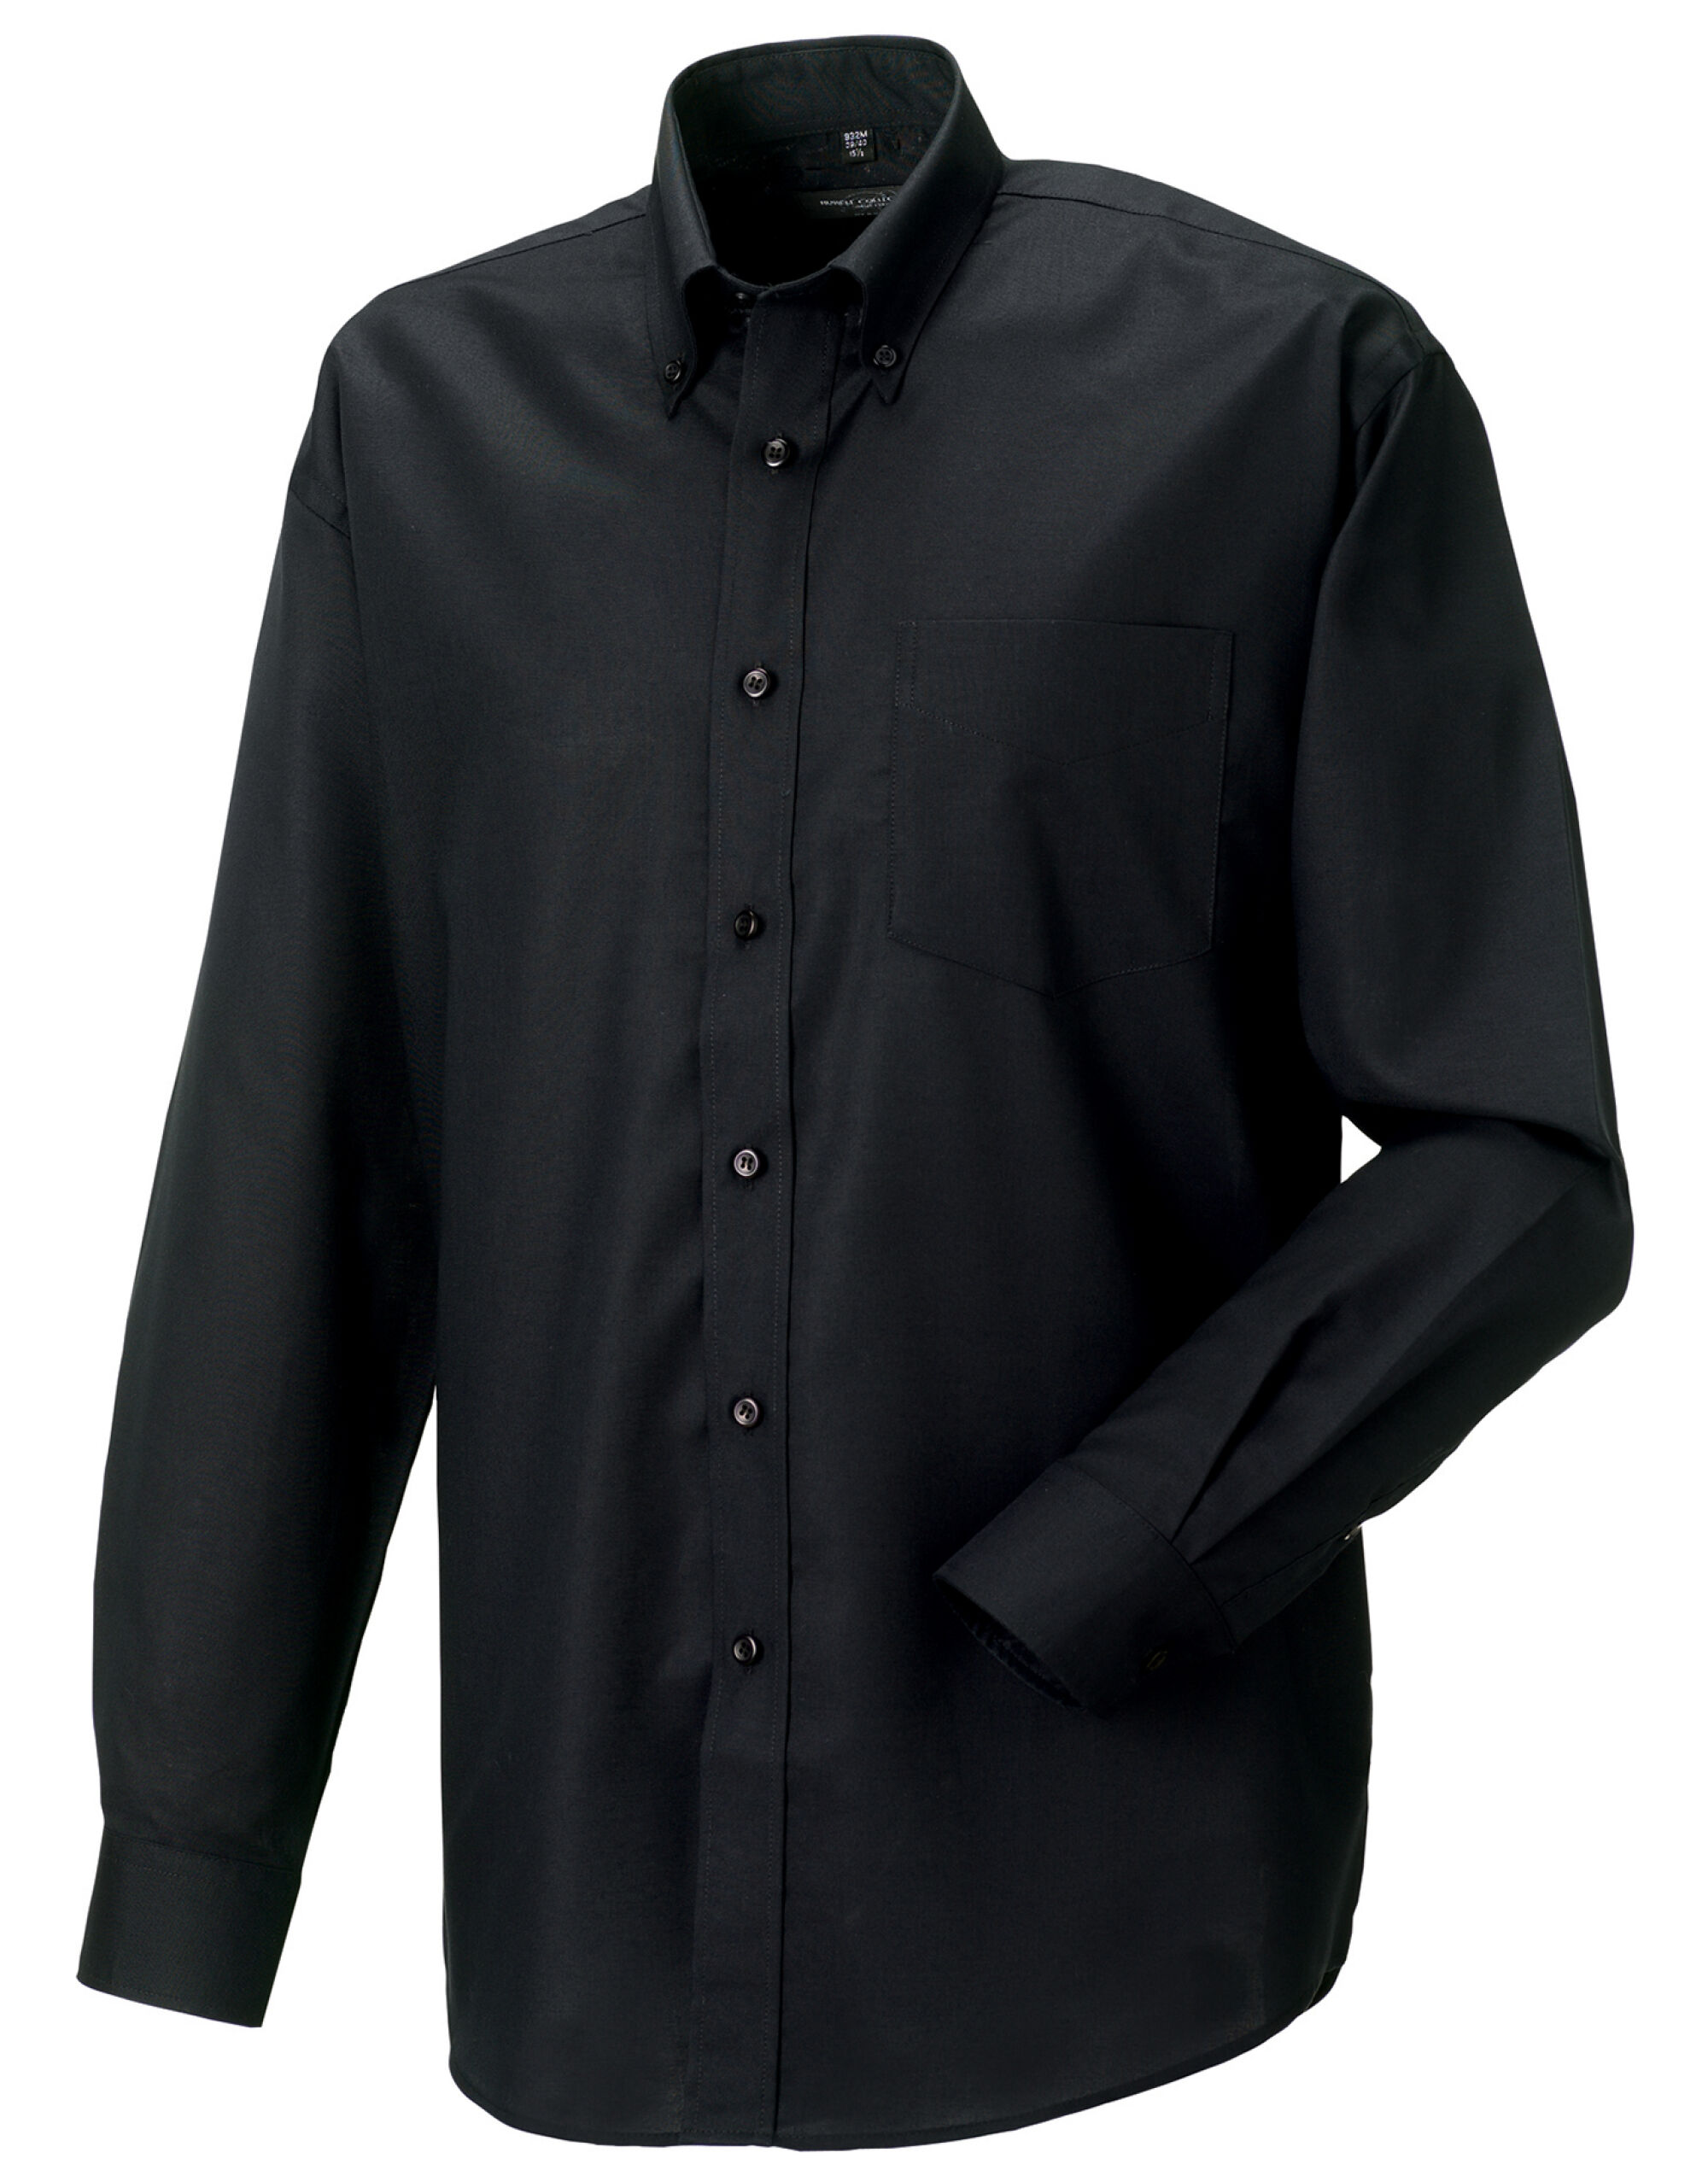 Men's Long Sleeve Easy Care Oxford Shirt